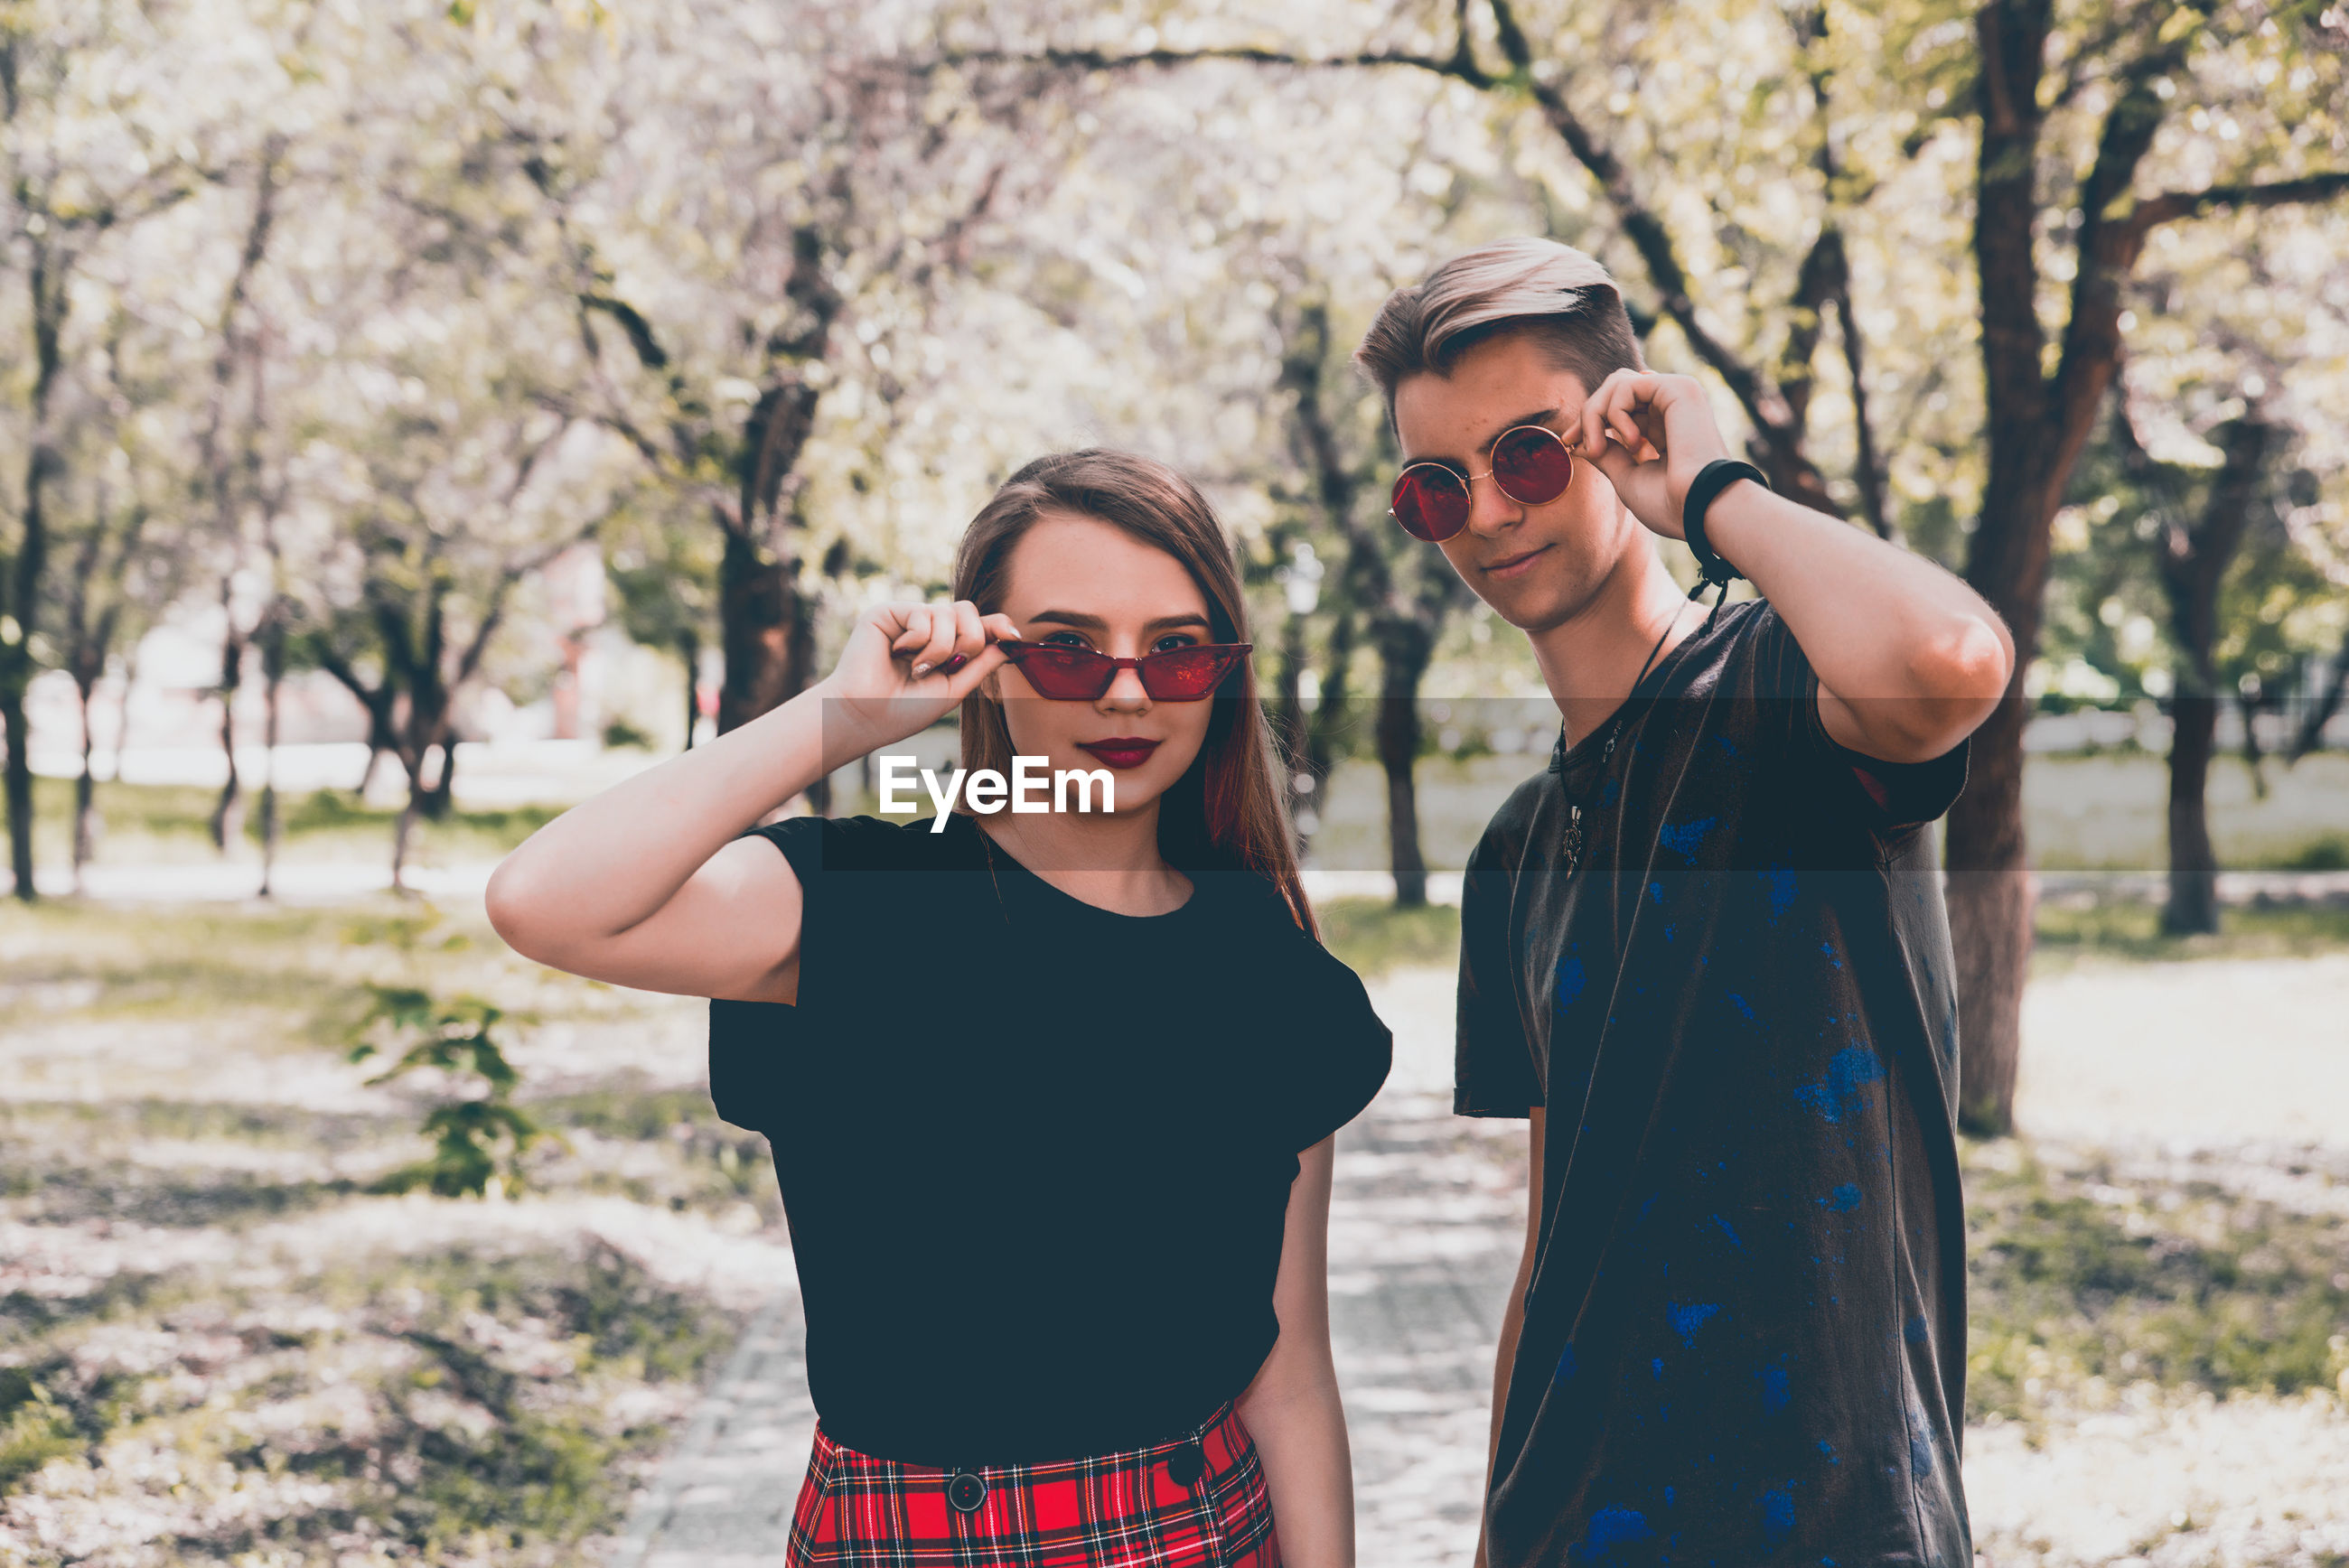 Couple wearing sunglasses standing against trees